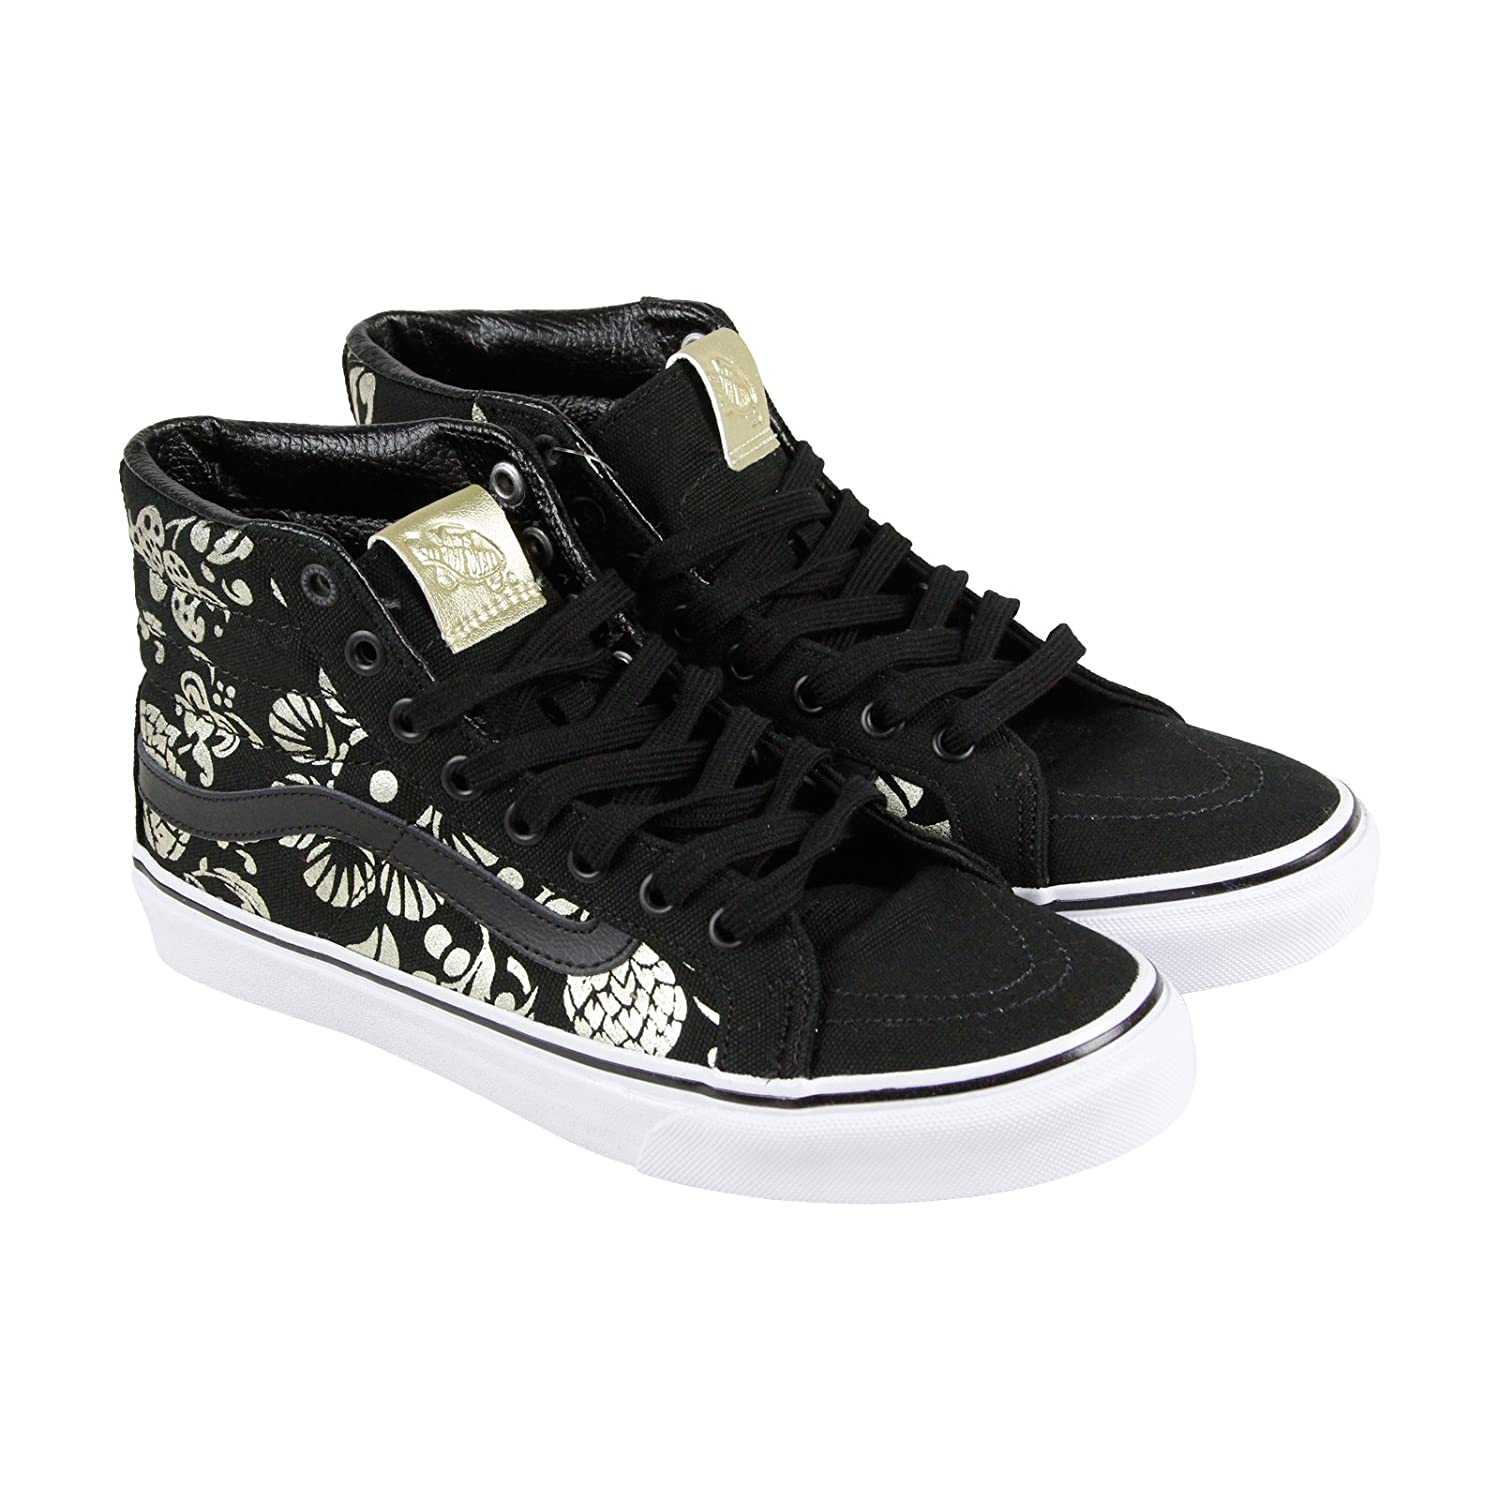 0a98a2c931 Vans Unisex Shoes SK8-Hi Slim Classic (50TH) Anniversary Black With Gold  Sneakers (6.5 MENS /8 WOMENS)